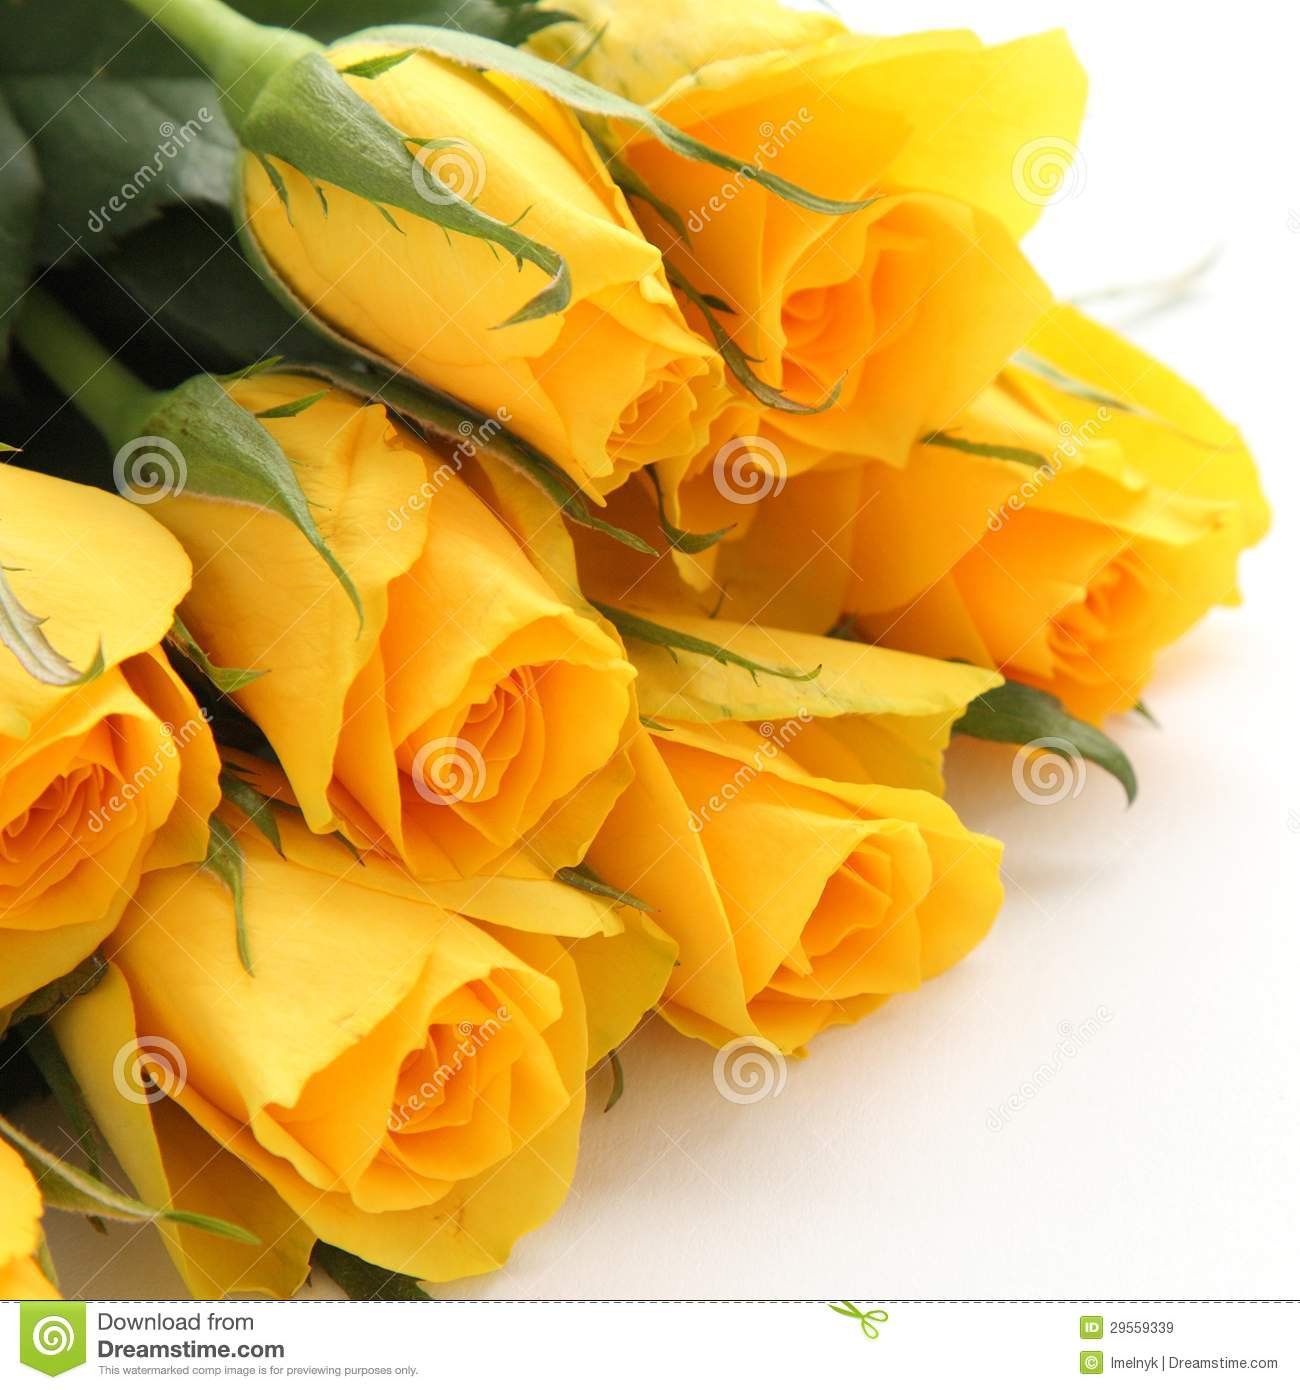 Bouquet Of Yellow Roses On White Background Royalty Free ...